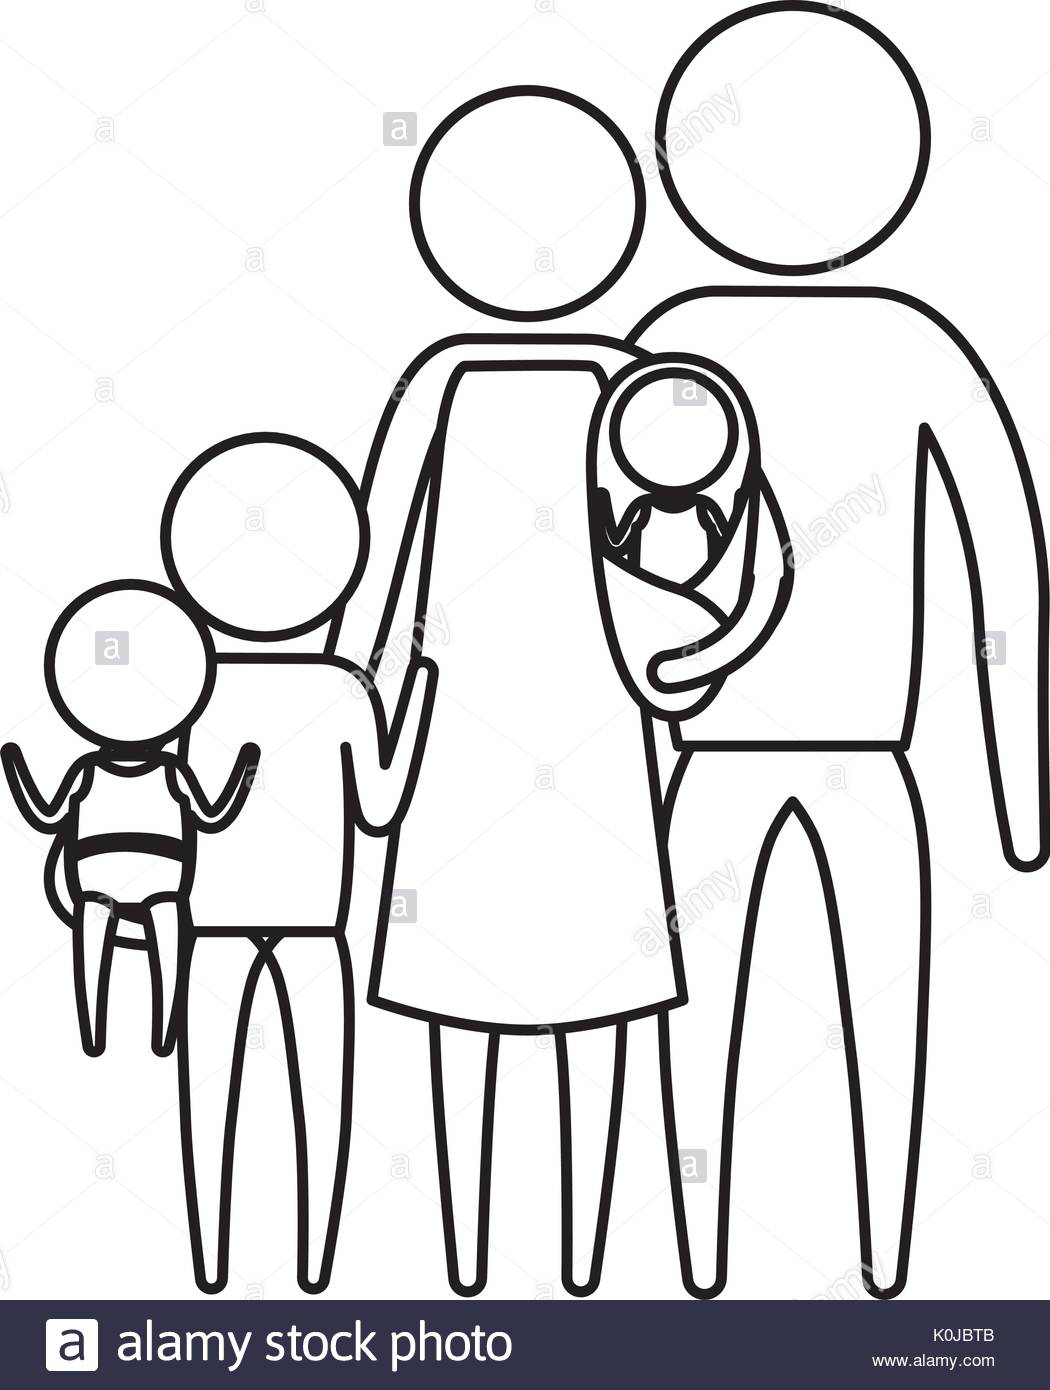 1050x1390 Sketch Silhouette Of Pictogram Big Family Group In Clothes Stock